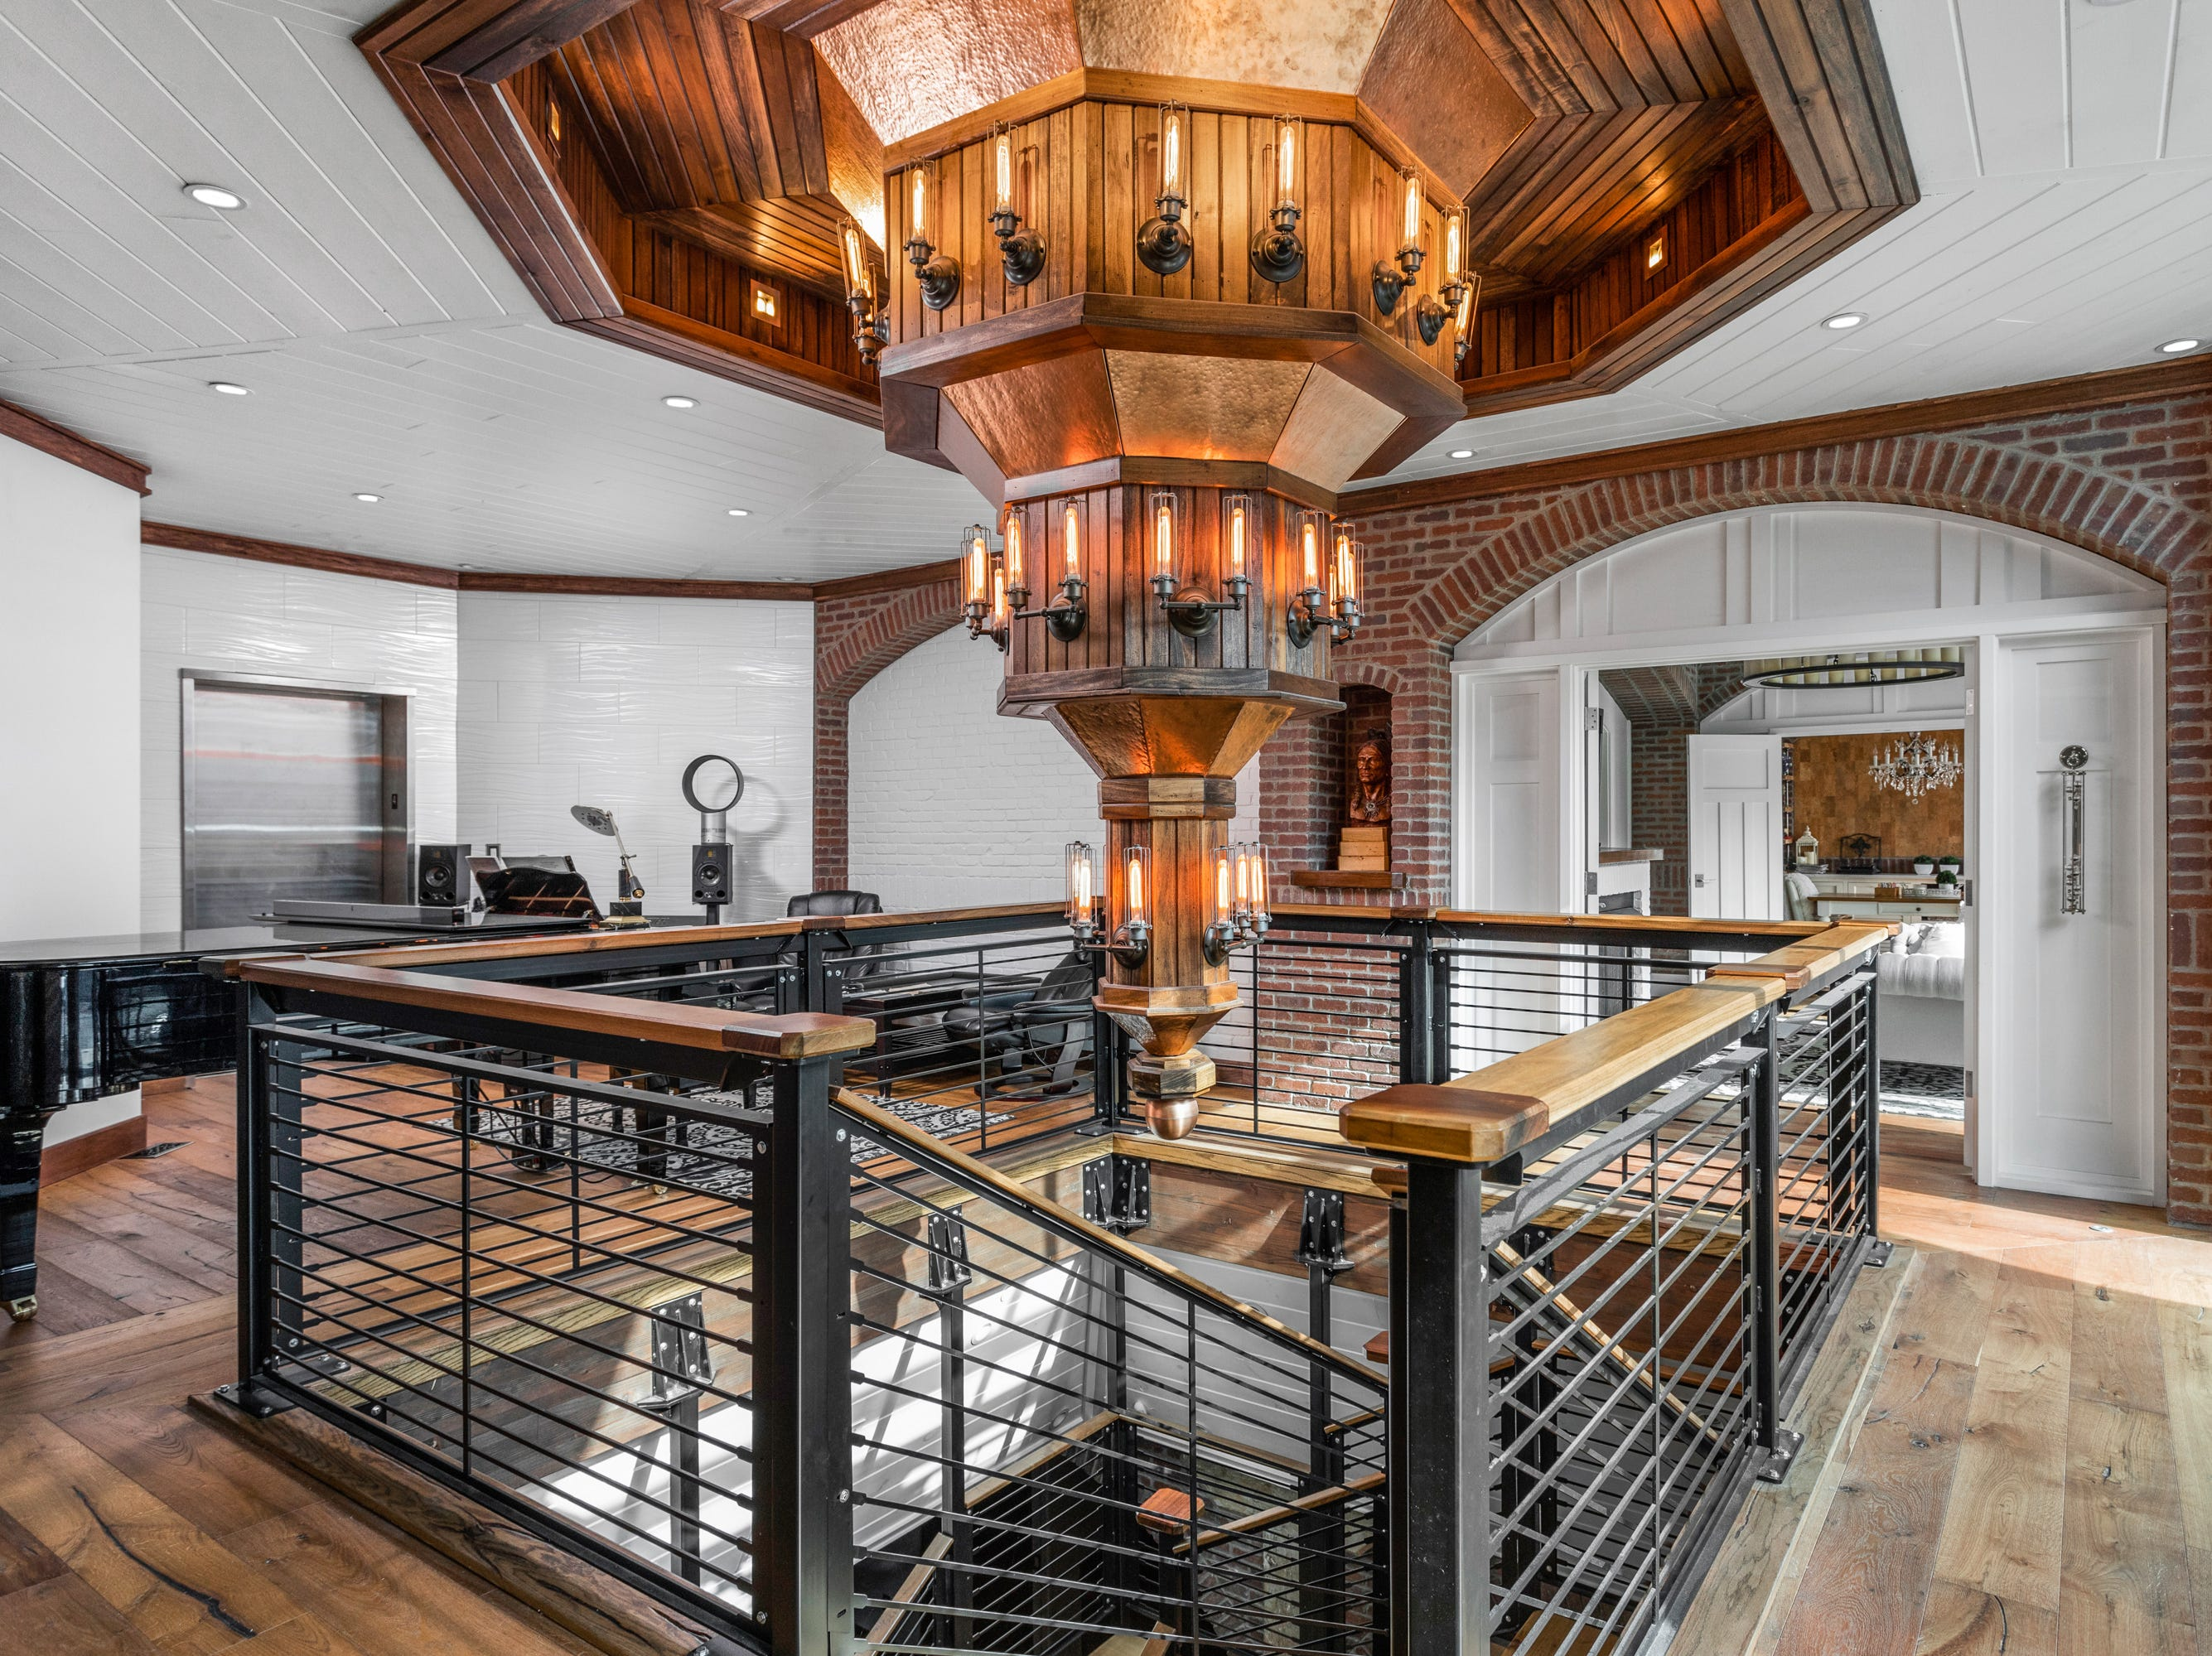 The current owner created this signature wood chandelier, visually anchored by the staircase.